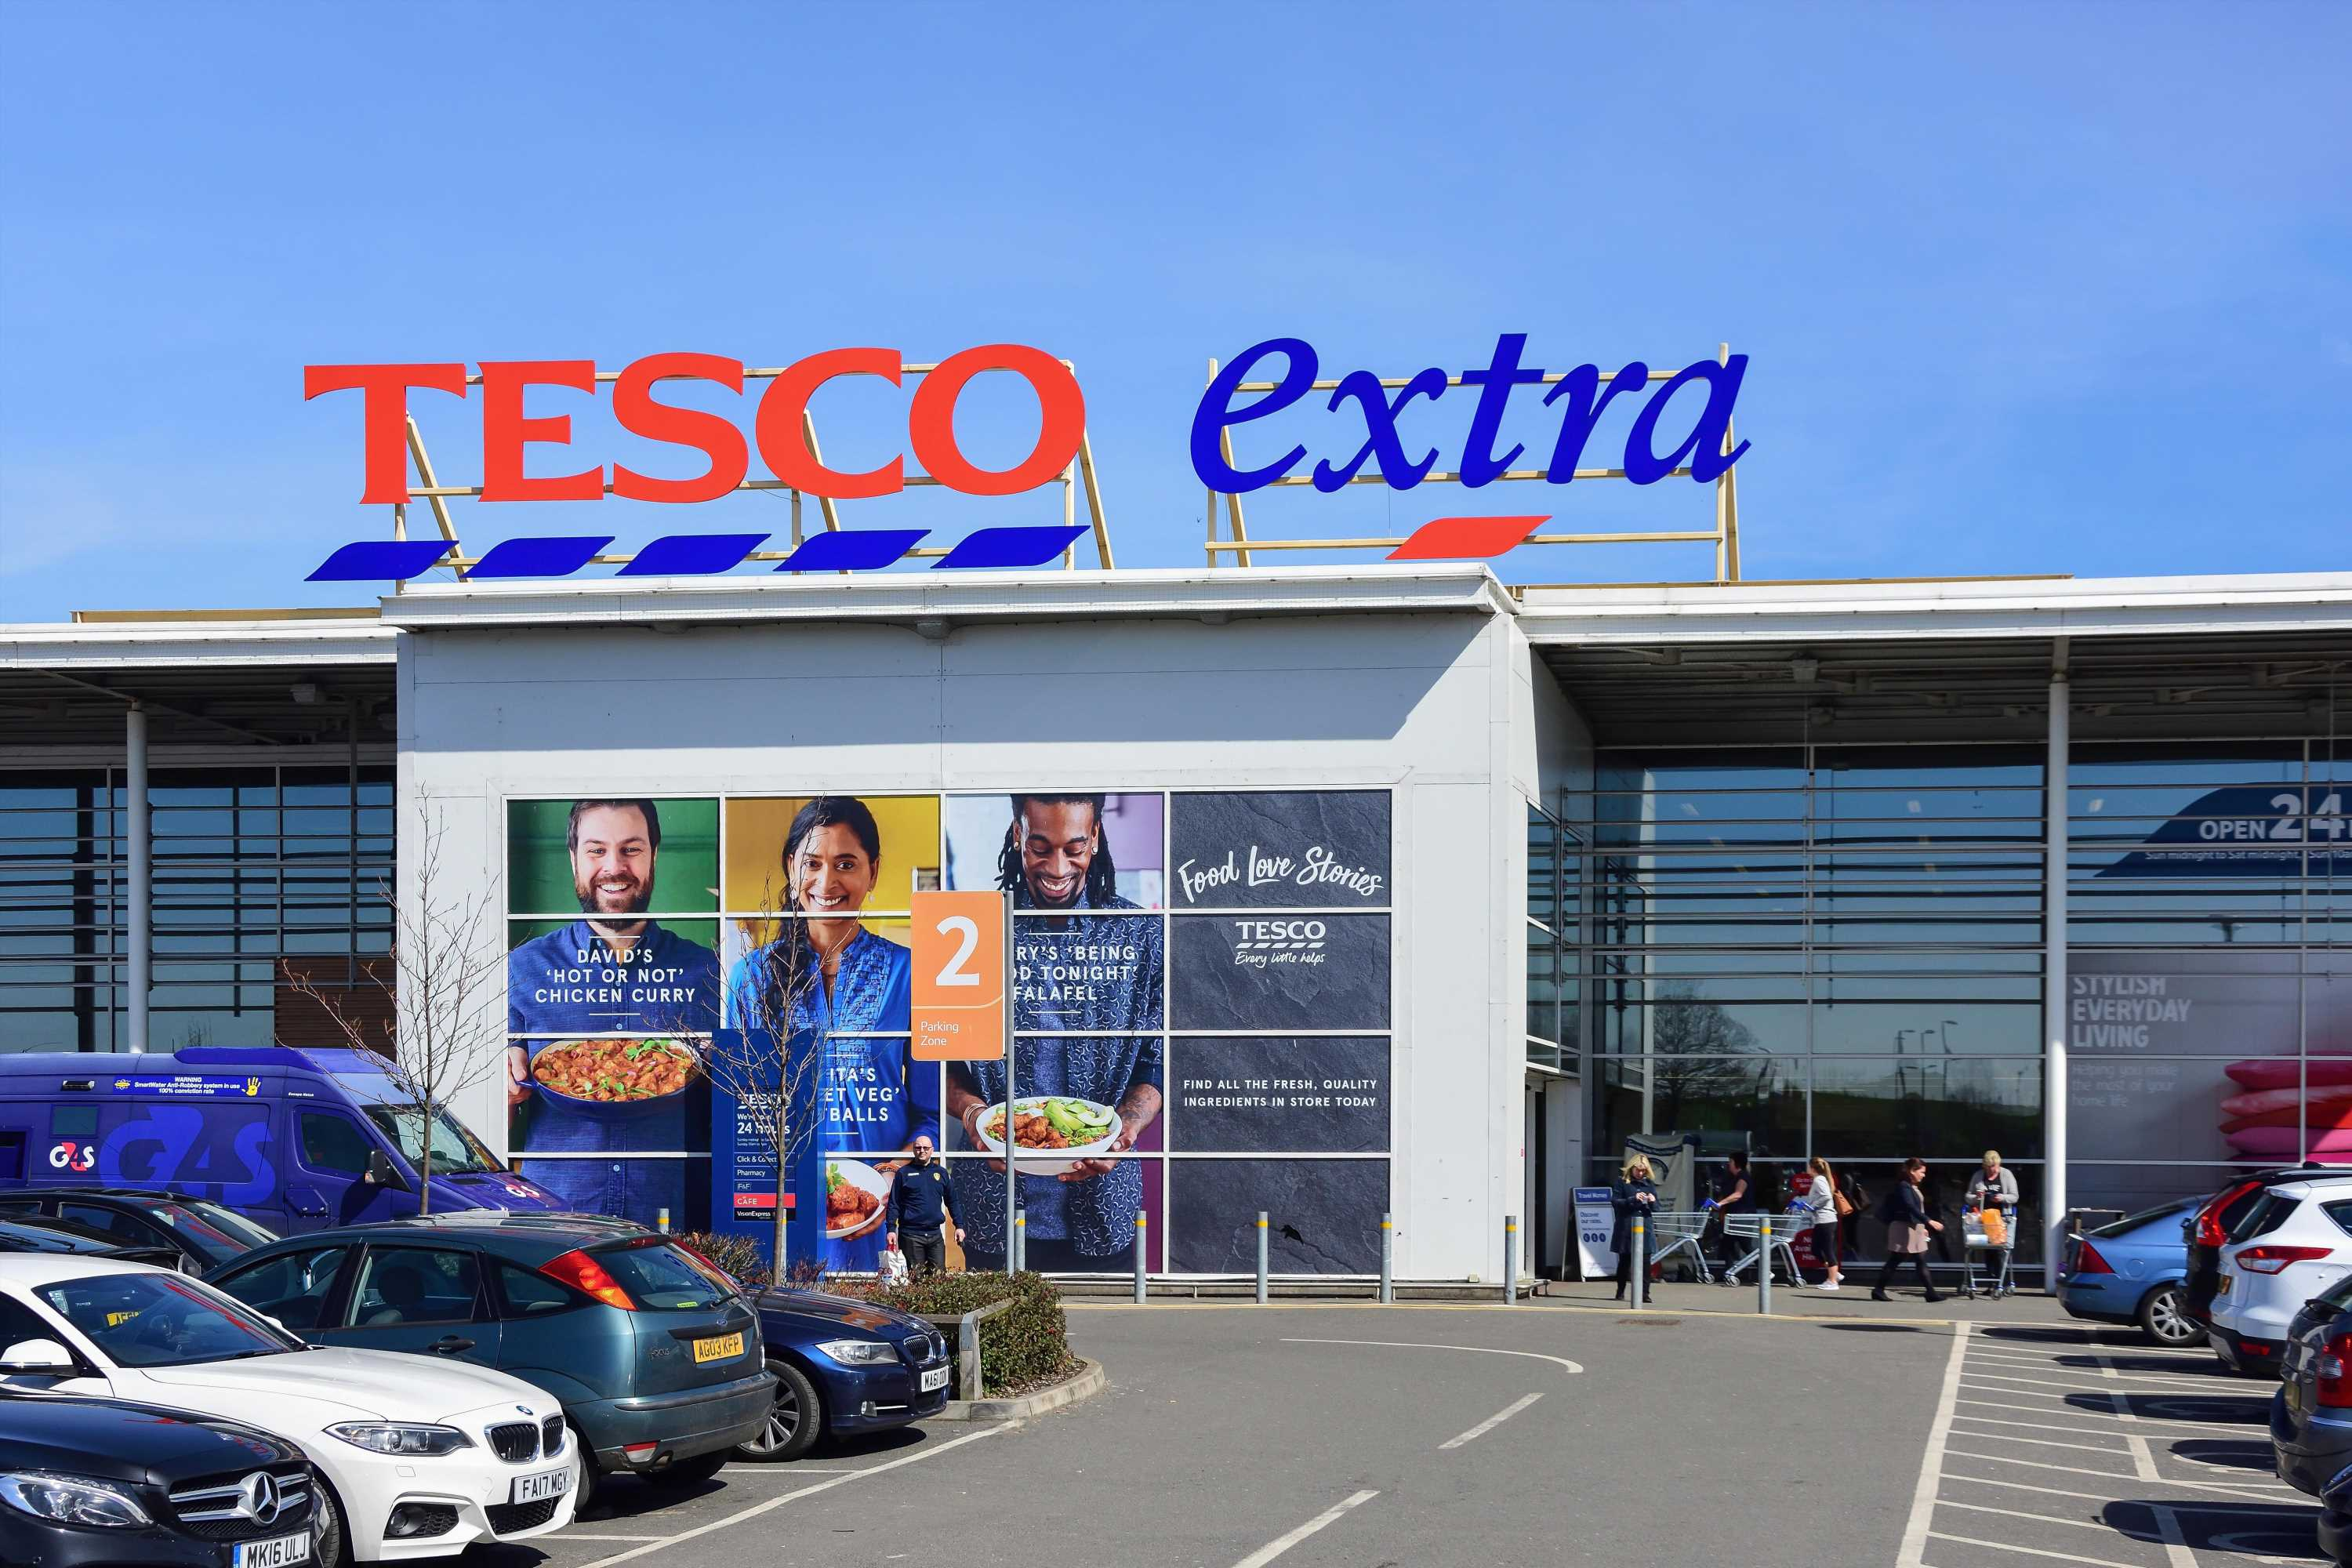 Tesco Easter 2019 opening times - bank holiday Monday supermarket opening hours - Big World News